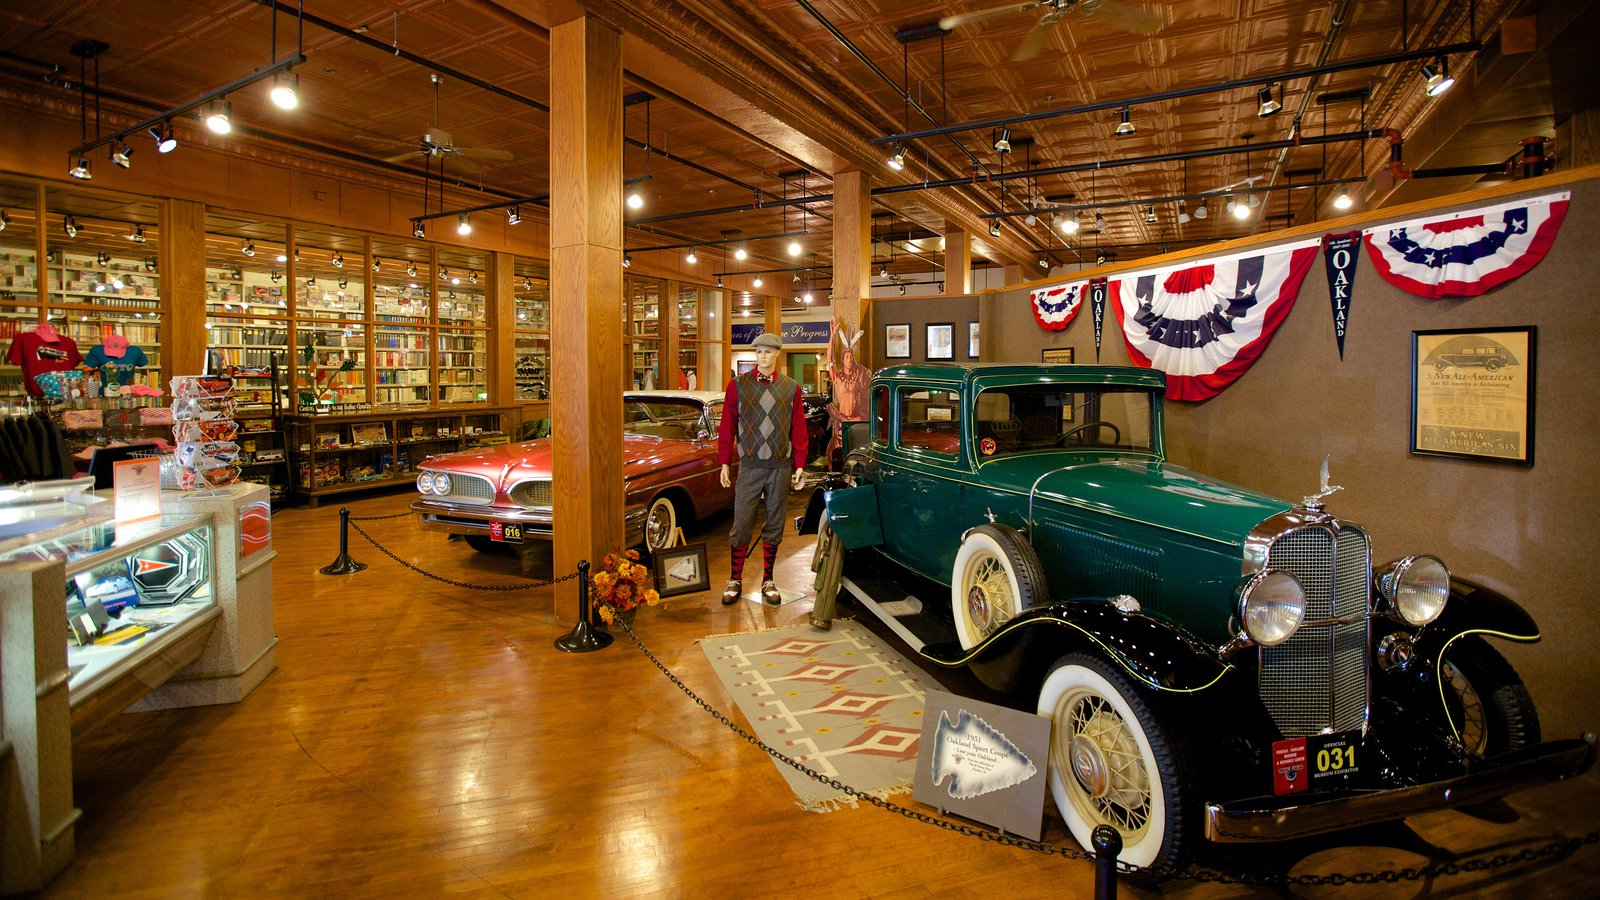 Museum Pictures: View Images of Pontiac-Oakland Automobile Museum